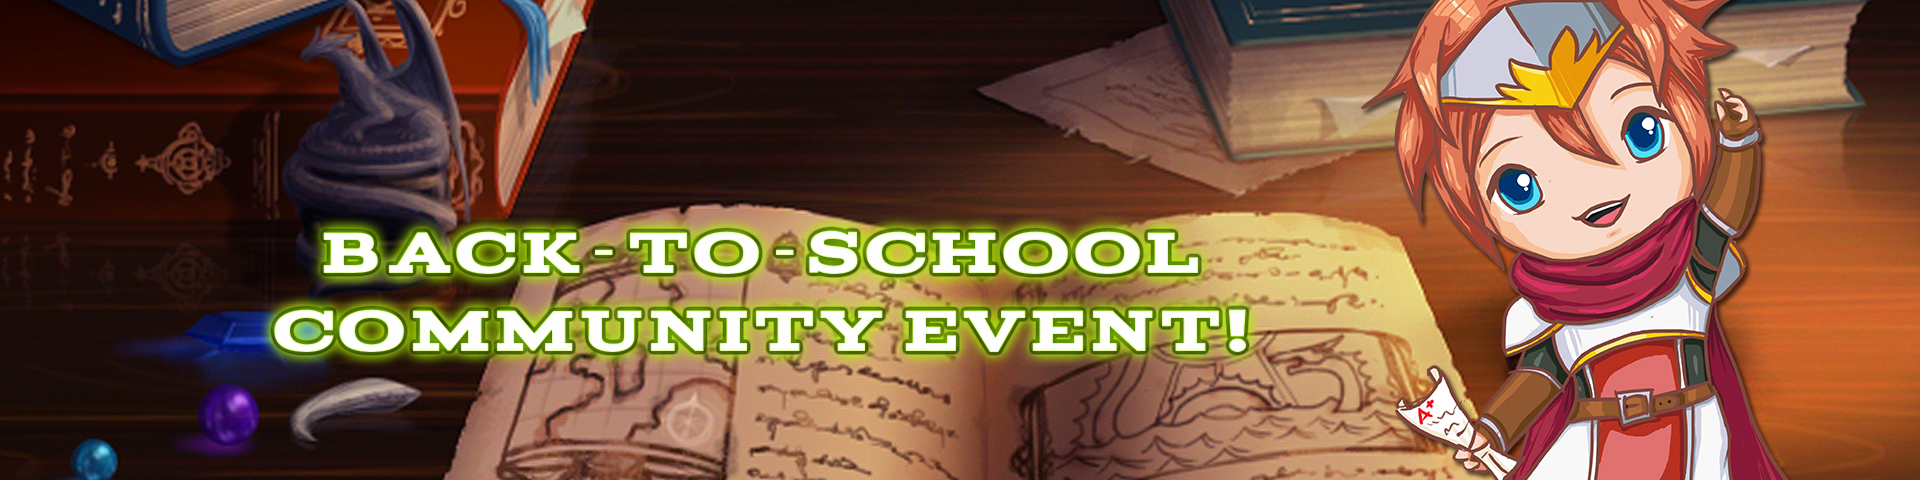 Back-to-school Event!